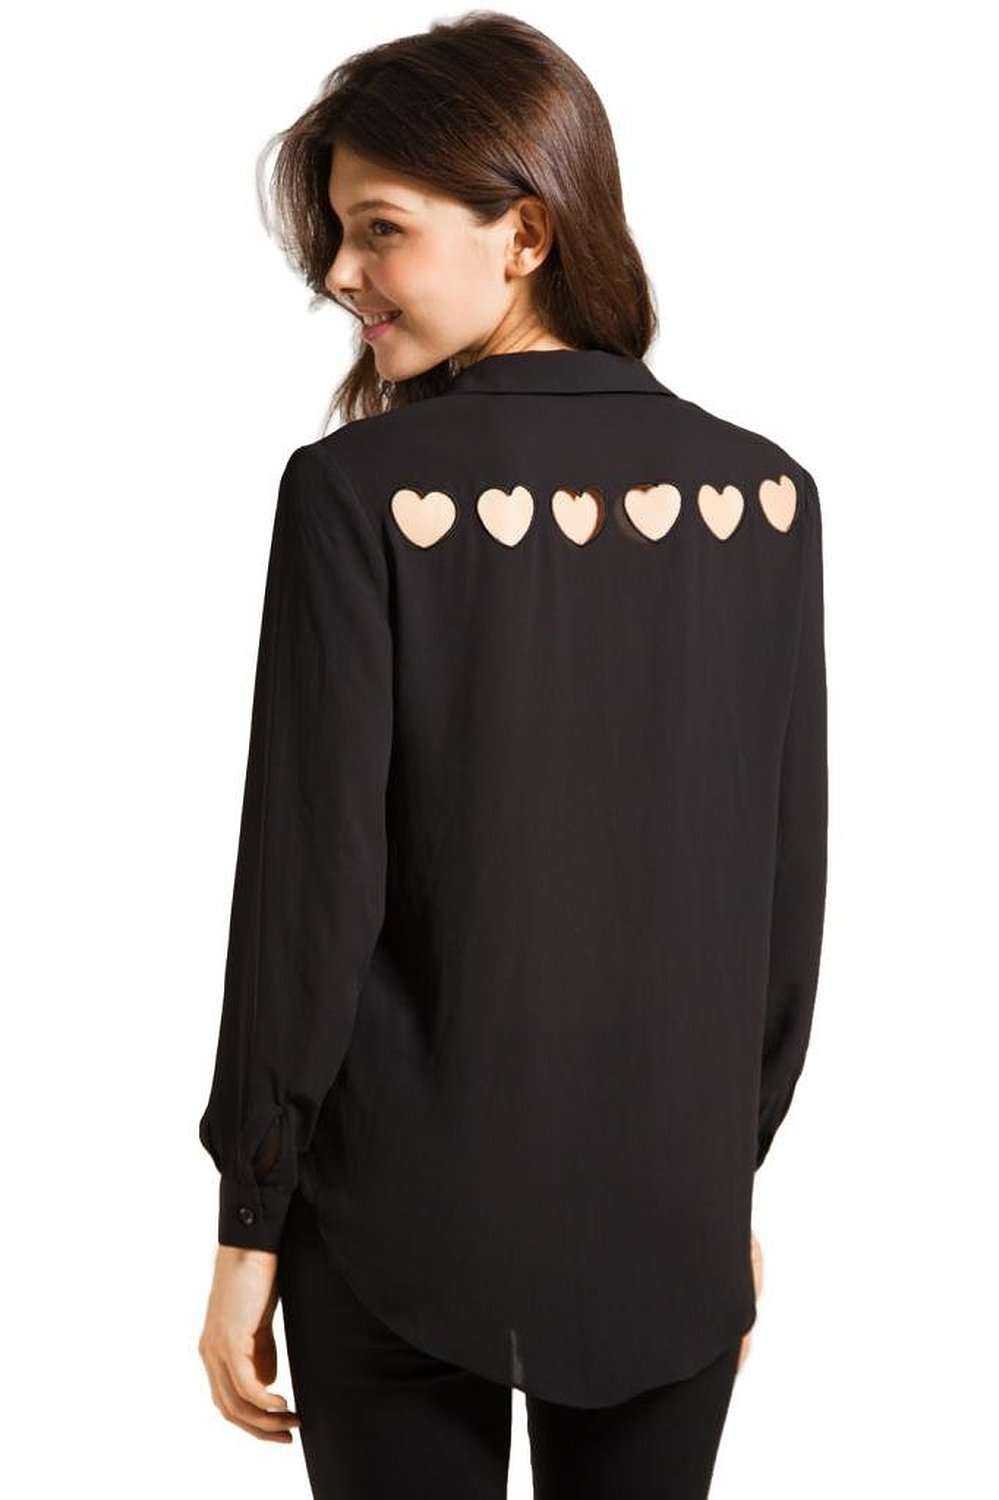 Lookbookstore women chiffon heart cut out back sheer point collar long sleeve shirt blouse top black uk 12: amazon.co.uk: clothing